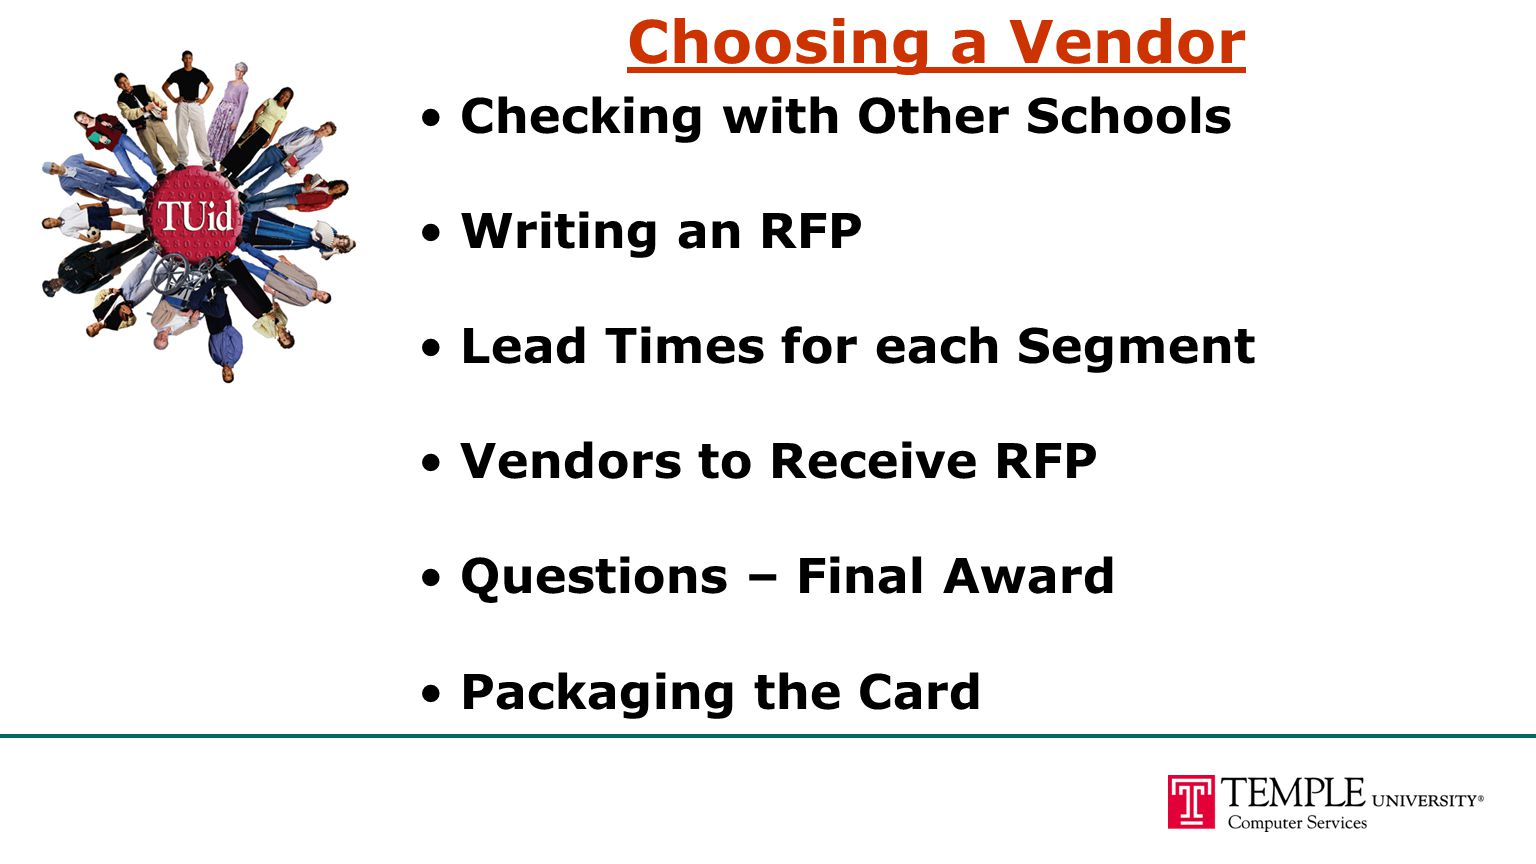 Choosing a Vendor Checking with Other Schools Writing an RFP Lead Times for each Segment Vendors to Receive RFP Questions – Final Award Packaging the